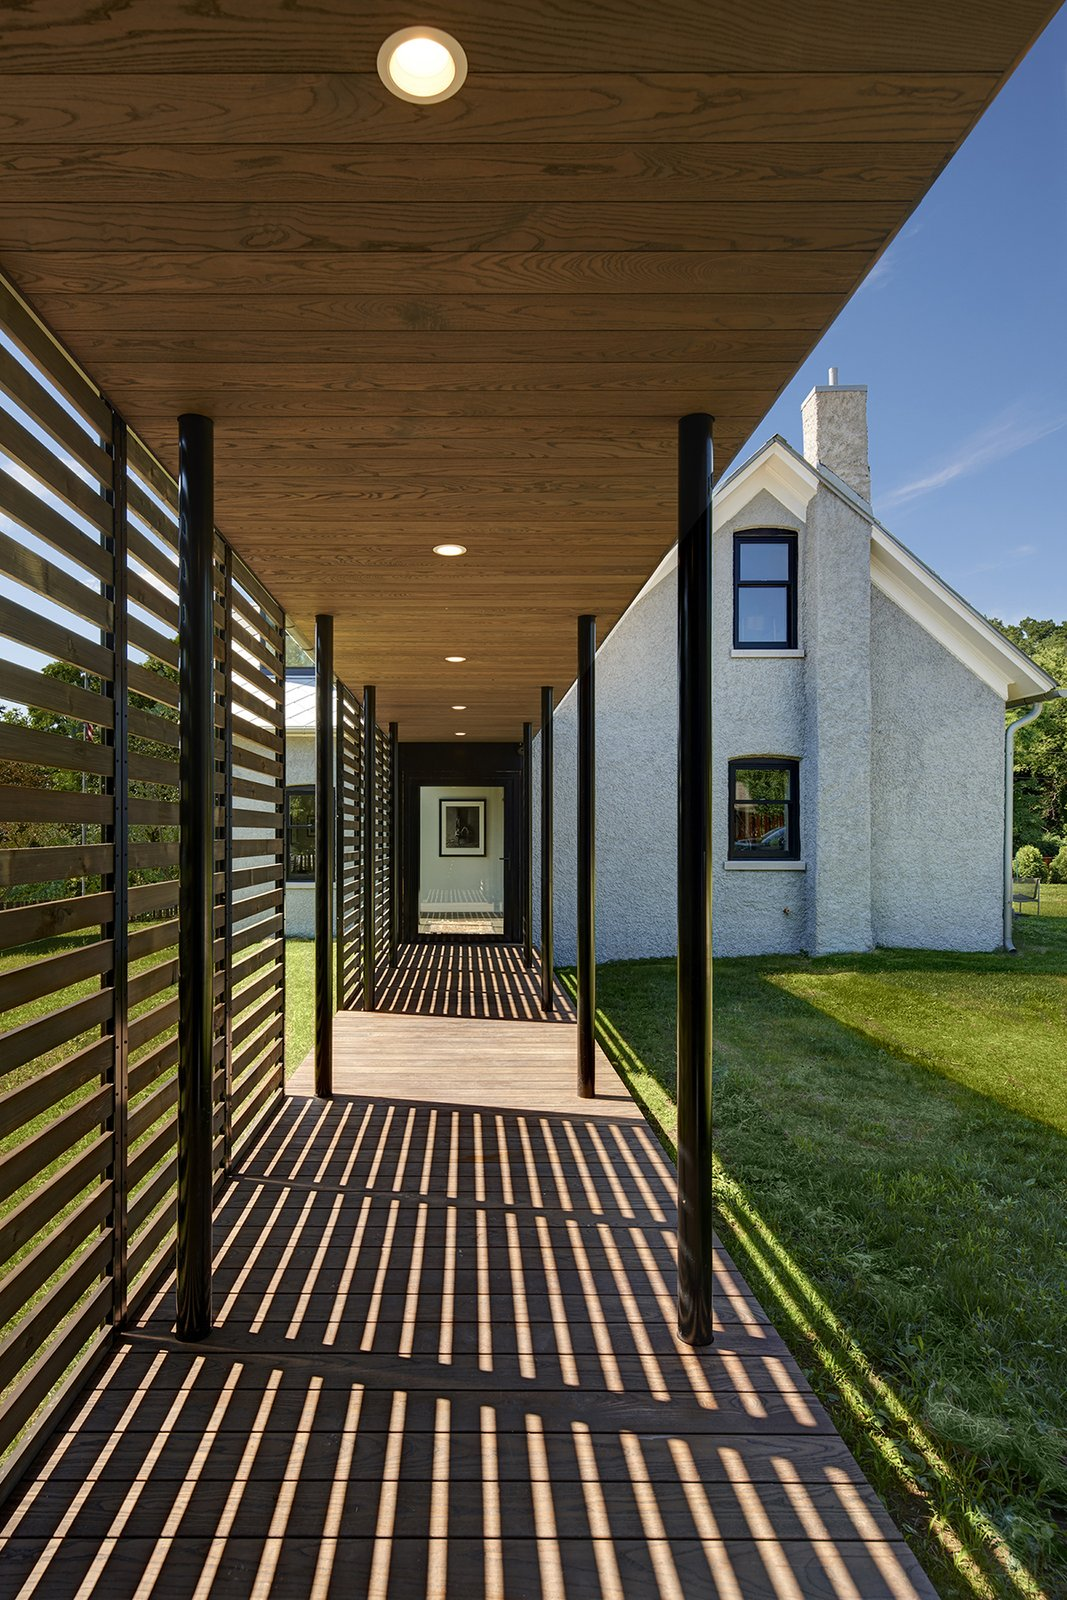 Outdoor, Walkways, Back Yard, Side Yard, Grass, Horizontal Fences, Wall, Wood Fences, Wall, and Decking Patio, Porch, Deck  Photo 5 of 13 in An 1850s Farmhouse in Iowa City Gets a Modern Makeover